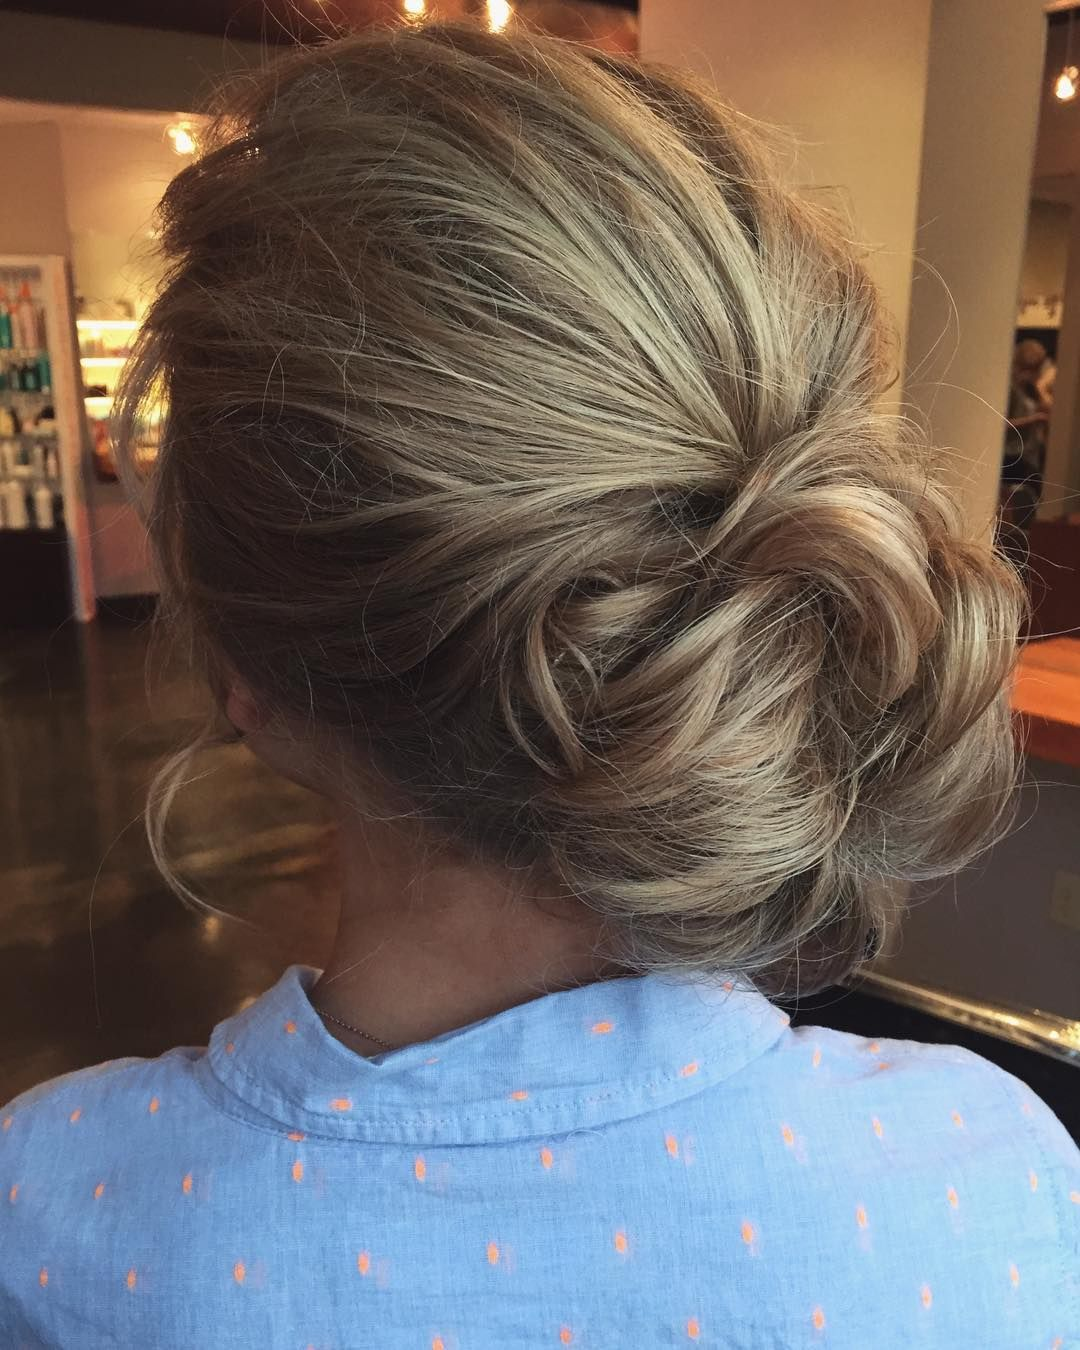 49 Gorgeous Wedding Updo Hairstyles That Will Wow Your Big Day